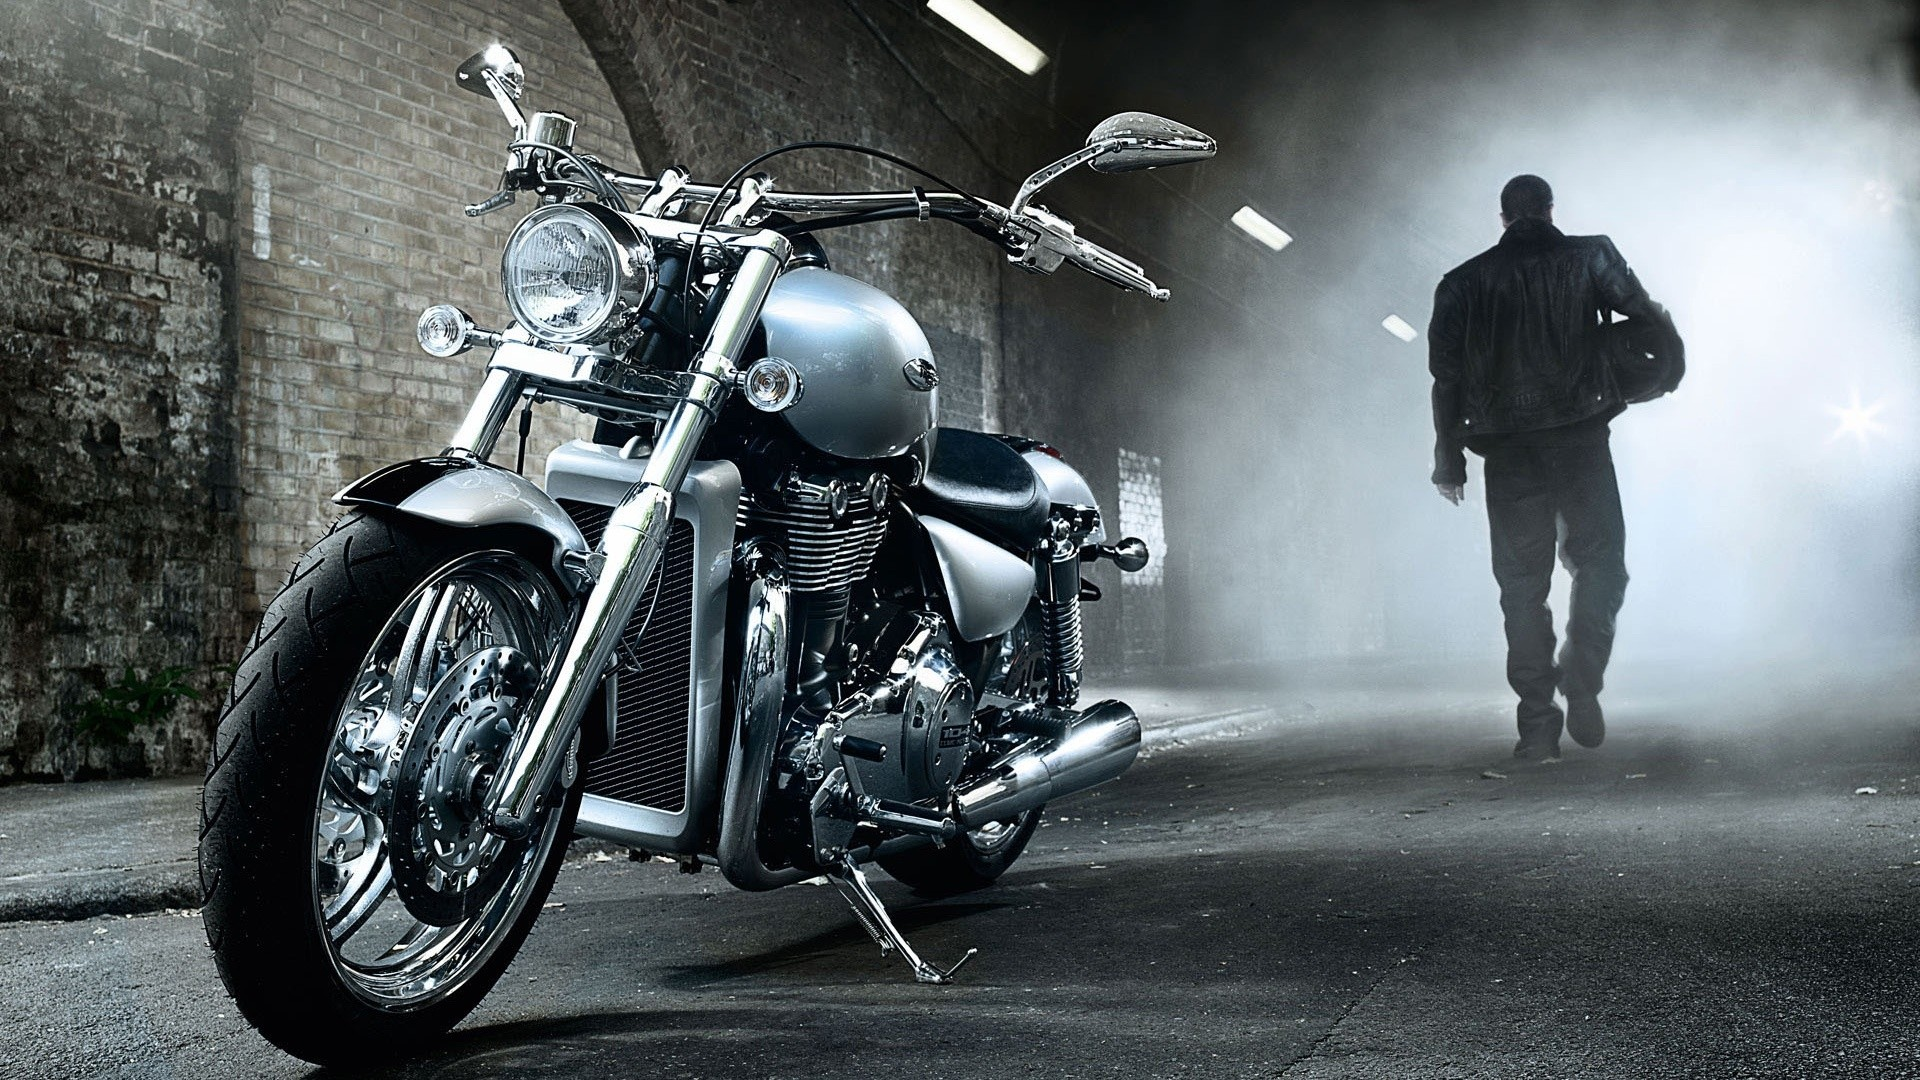 Harley Davidson Wallpaper Photos HD 1920x1080